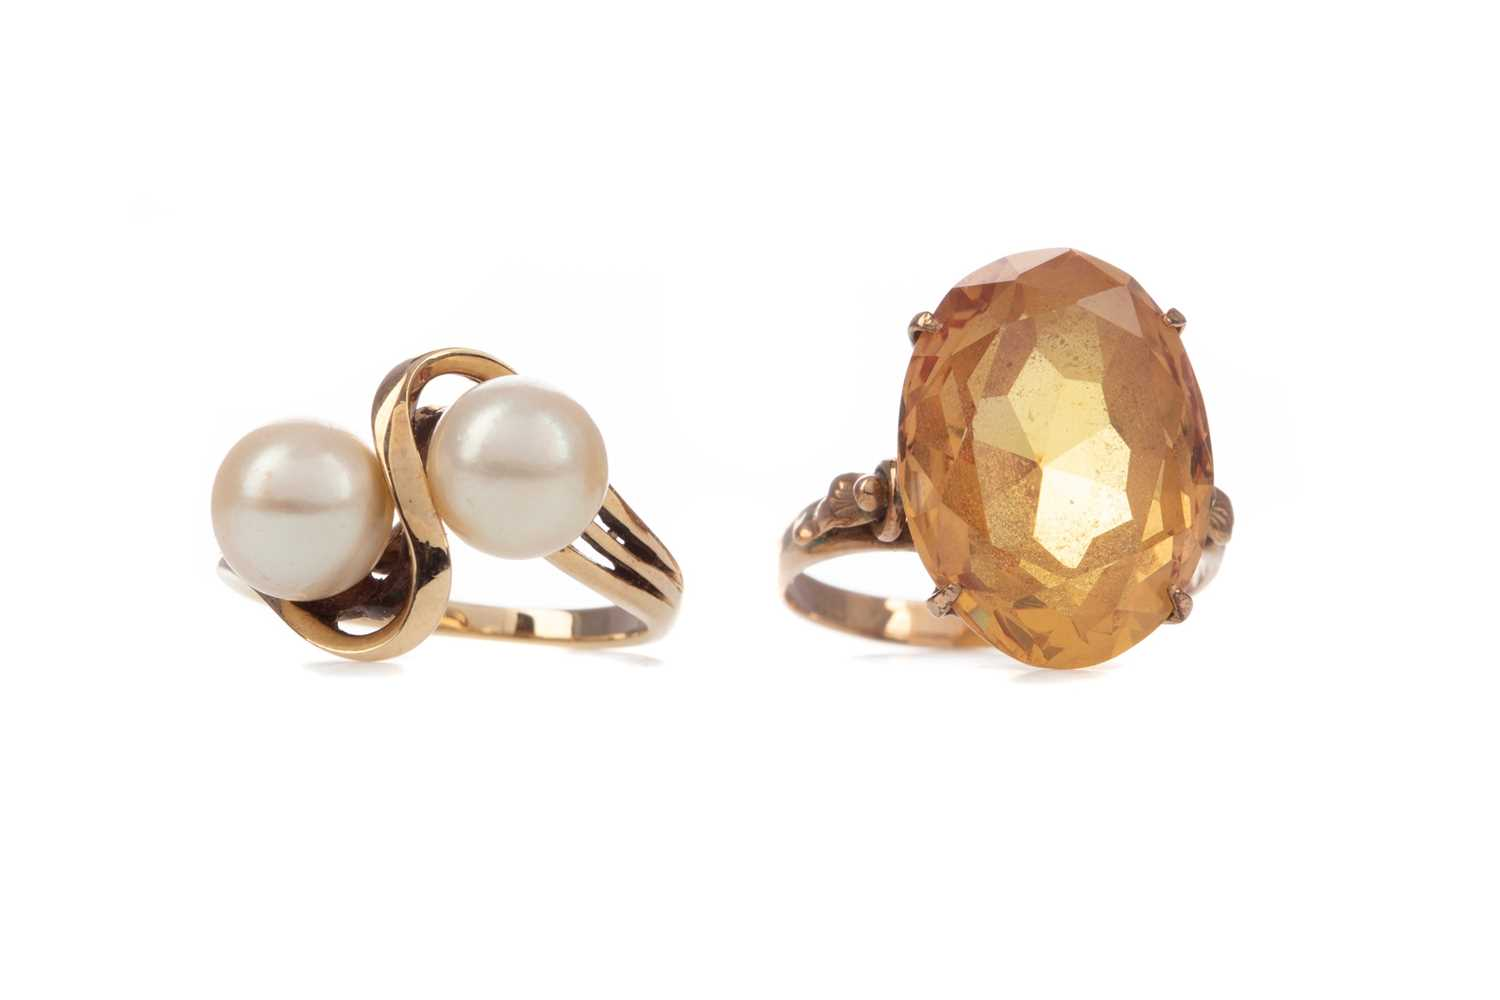 Lot 1330 - A FAUX PEARL RING AND AN ORANGE GEM SET RING